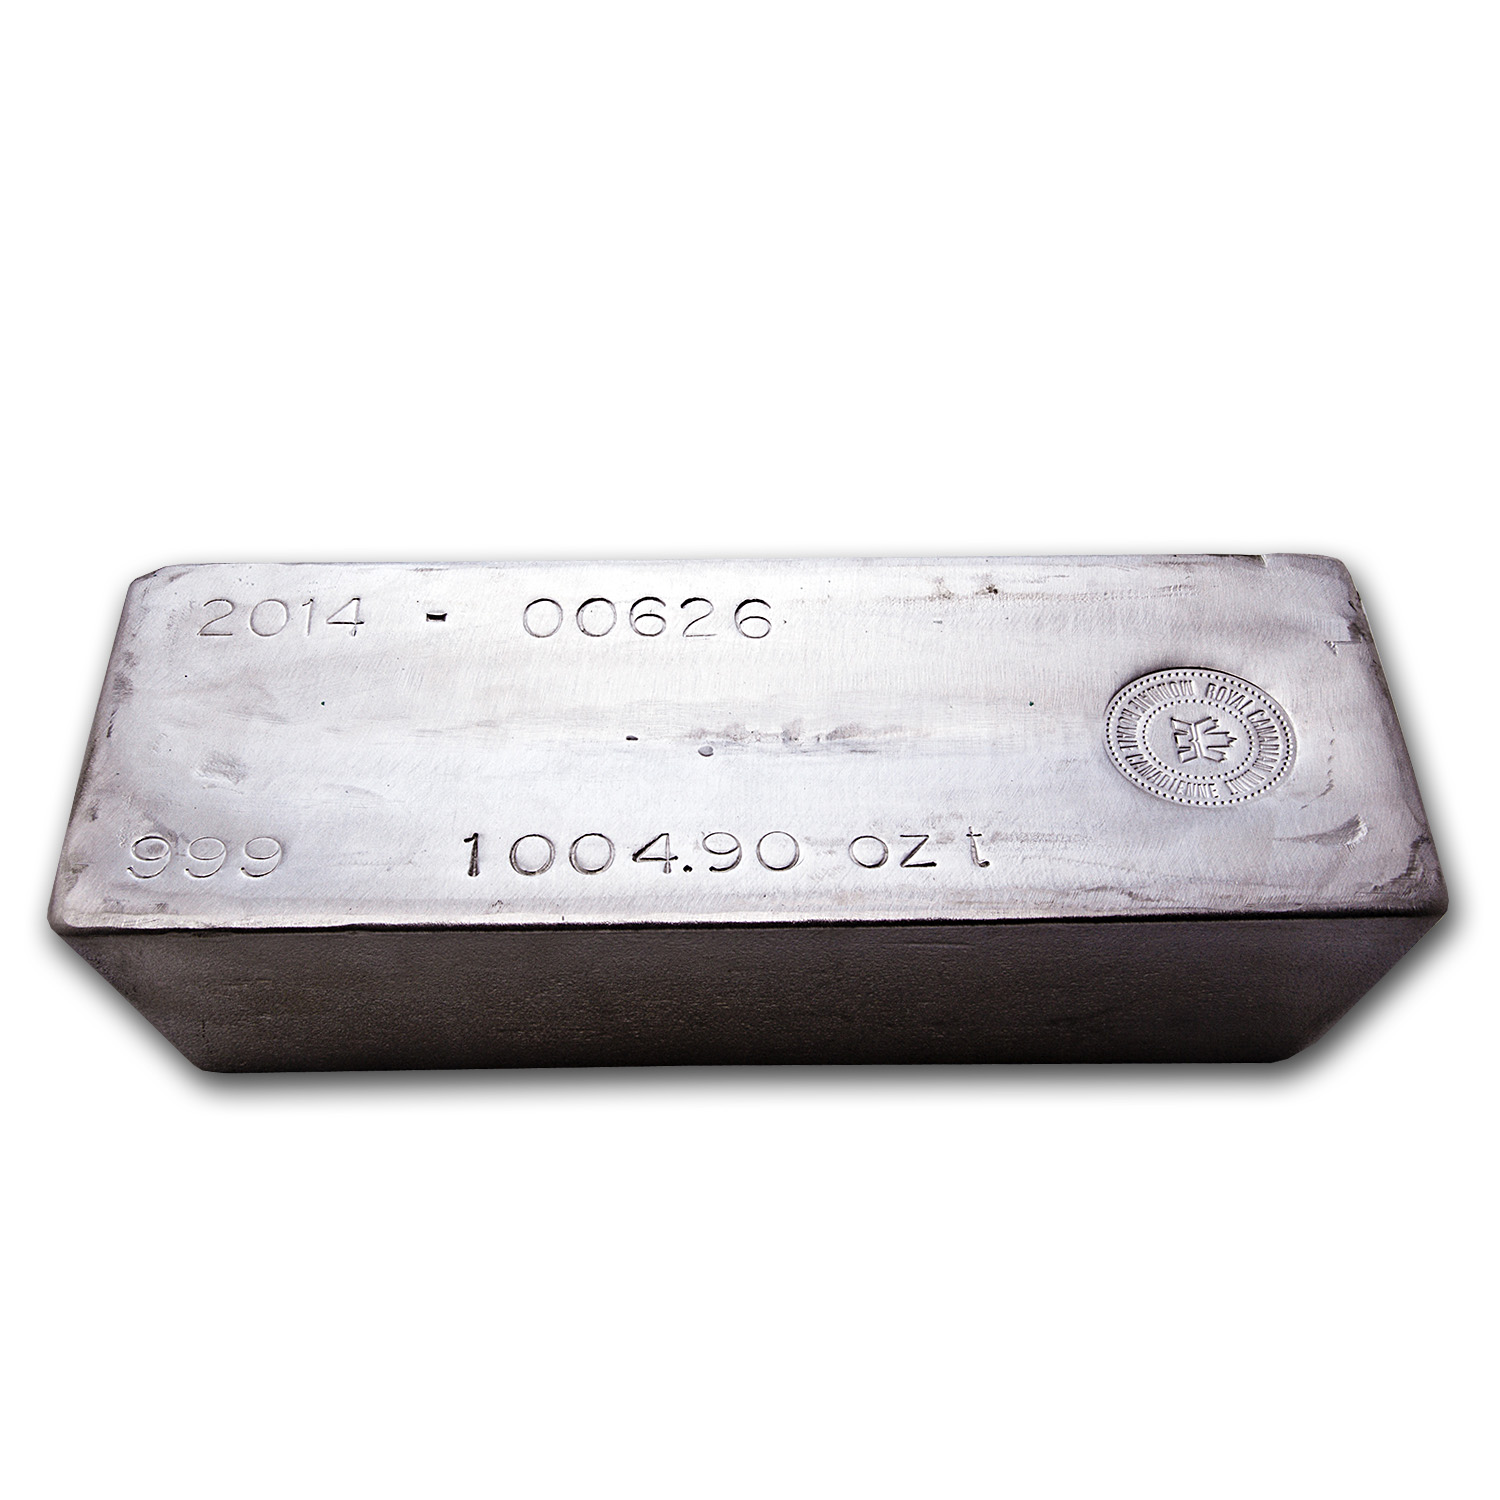 995.70 oz Silver Bar - Royal Canadian Mint (COMEX Deliverable)